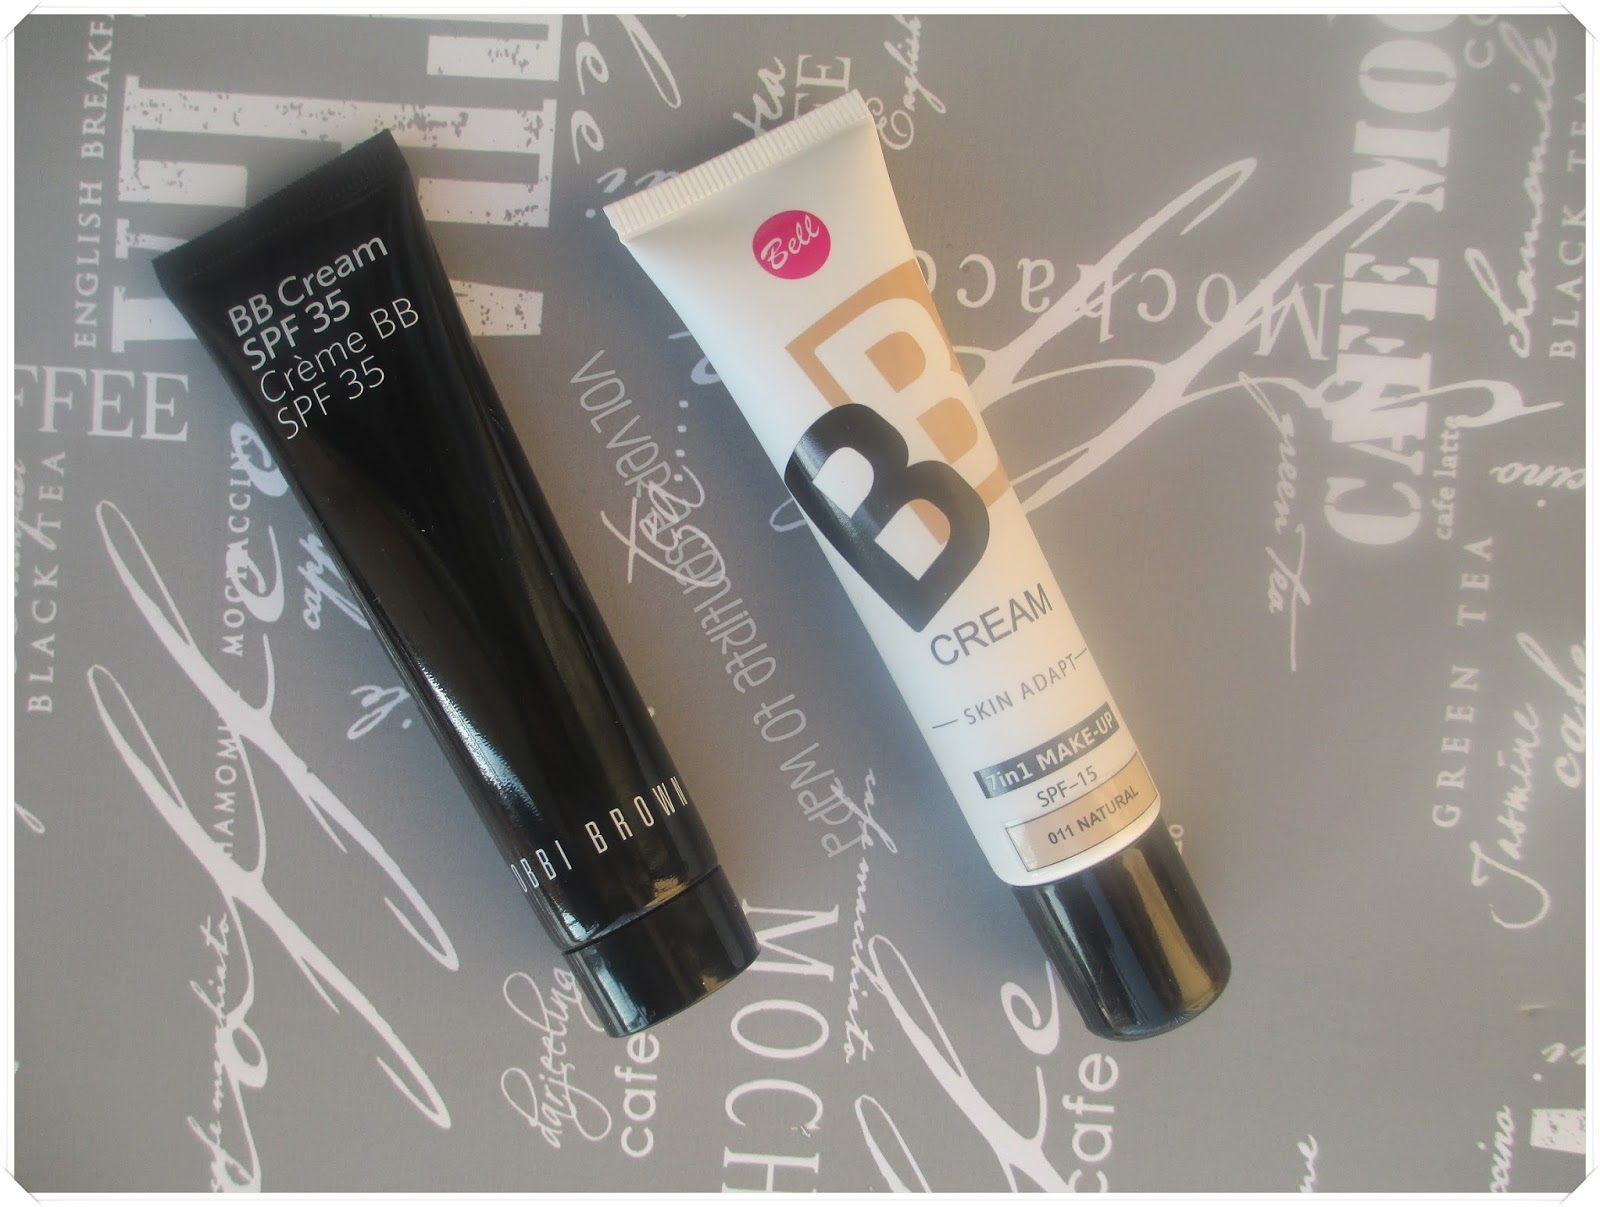 Tips de belleza para el verano: BB Cream SPF 35 de Bobbi Brown y BB Cream de Bell